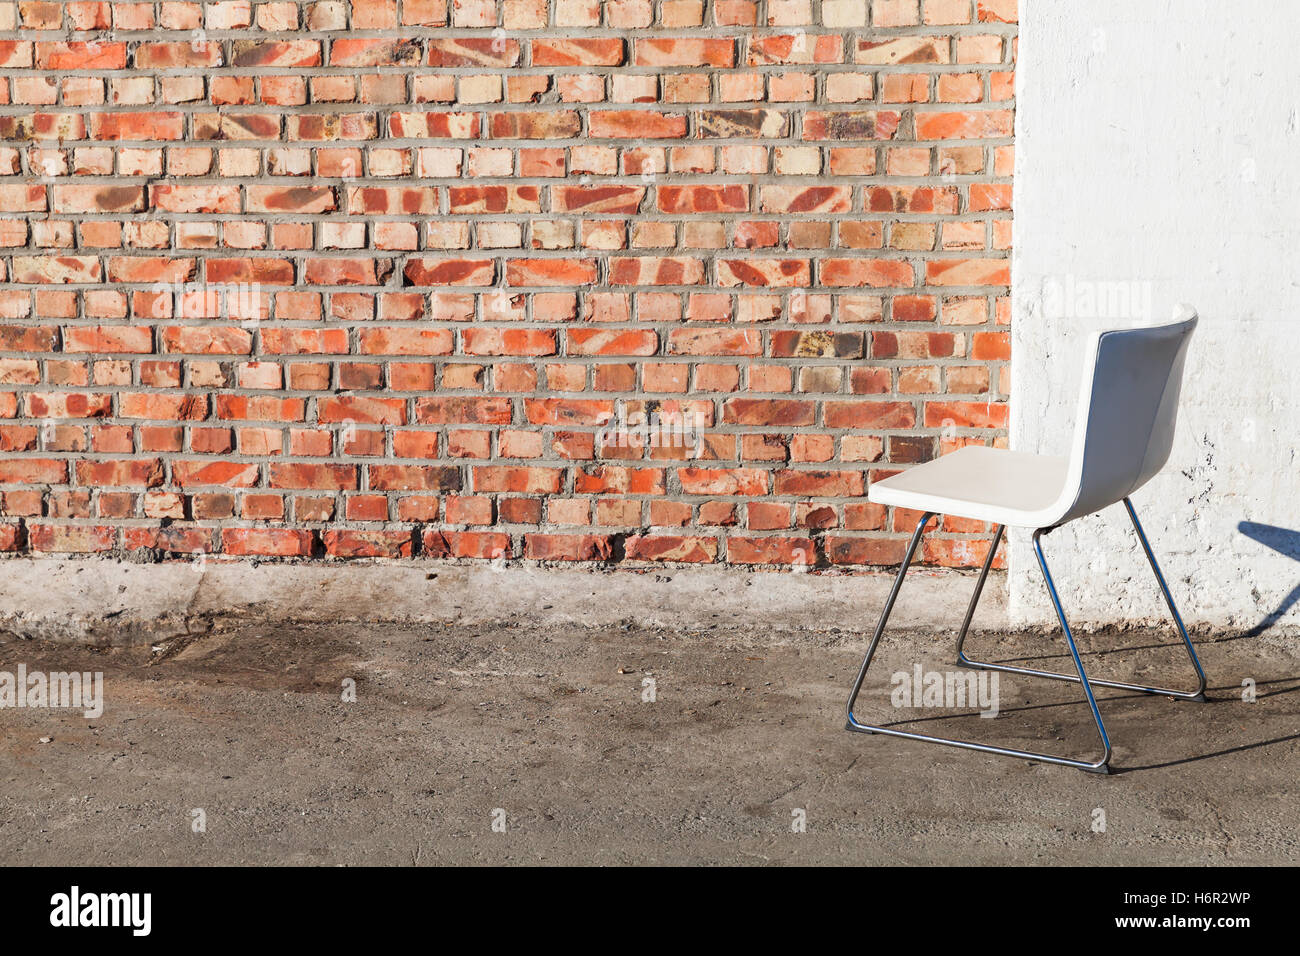 chair stands on baby chairs at walmart abstract empty interior background white office gray concrete floor near red brick wall